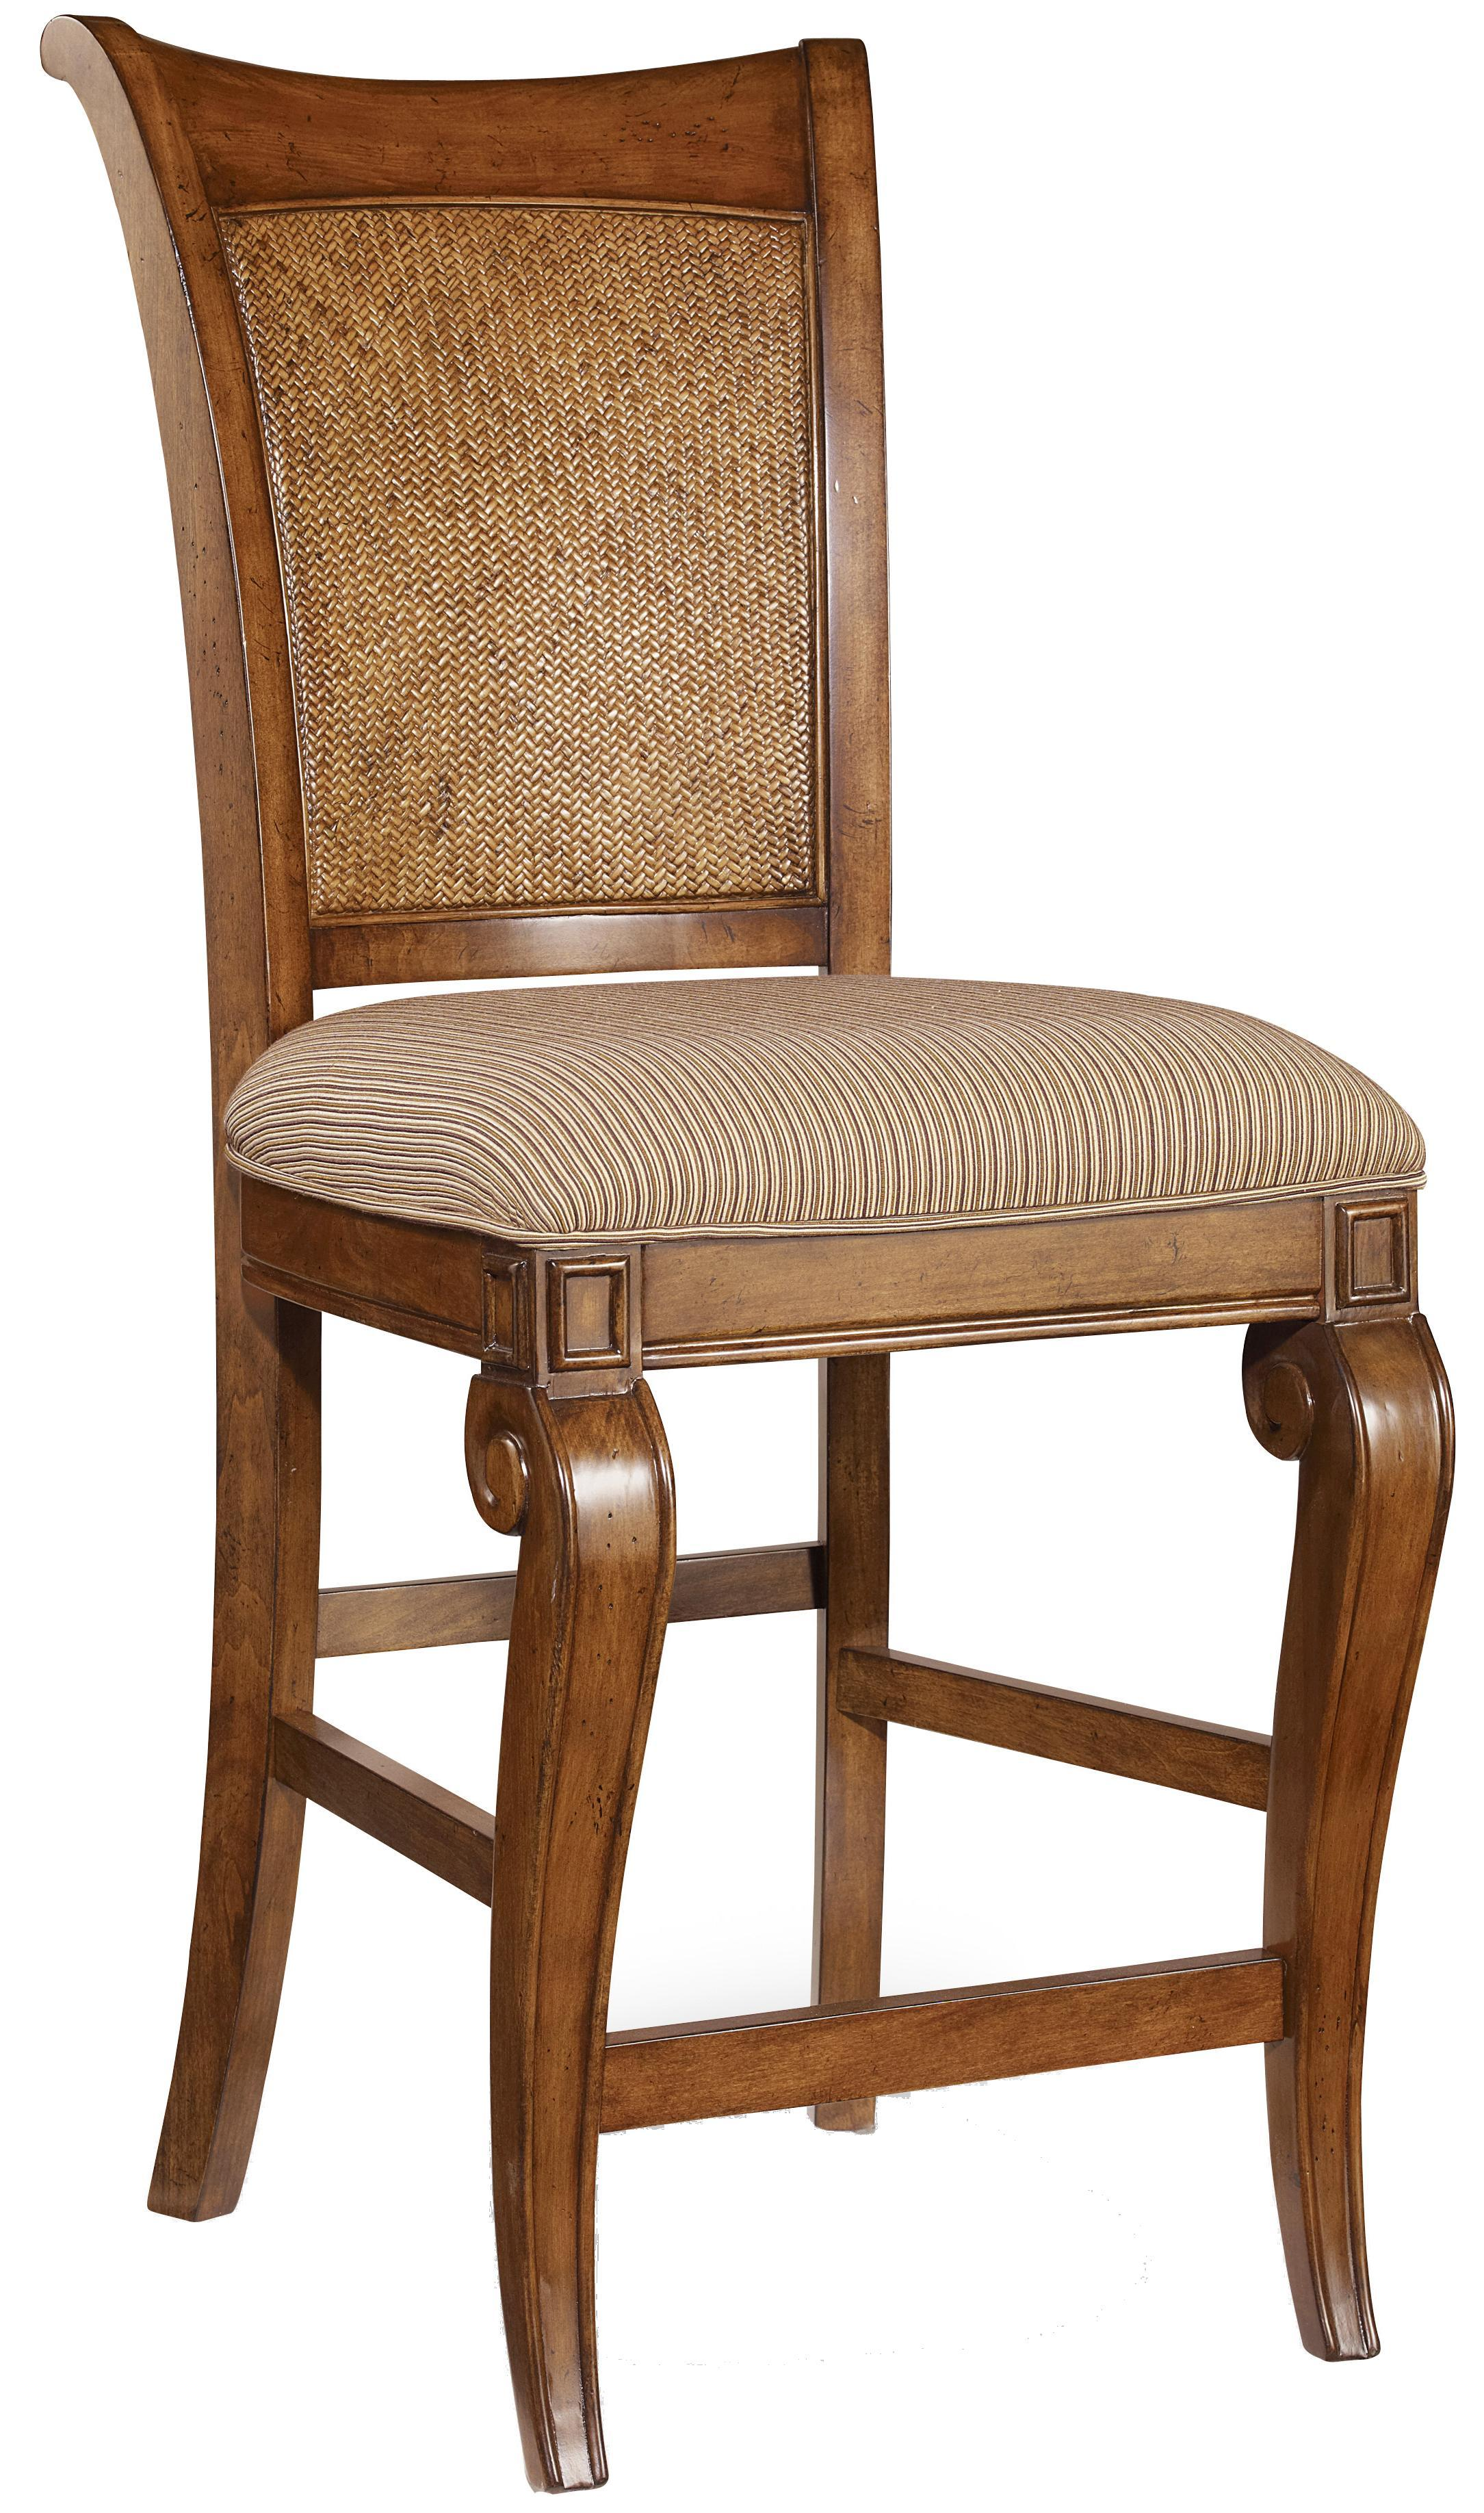 Hooker Furniture Windward Counter Height Stool with Raffia Accents - AHFA - Bar Stool Dealer Locator  sc 1 st  Find Your Furniture & Hooker Furniture Windward Counter Height Stool with Raffia Accents ...